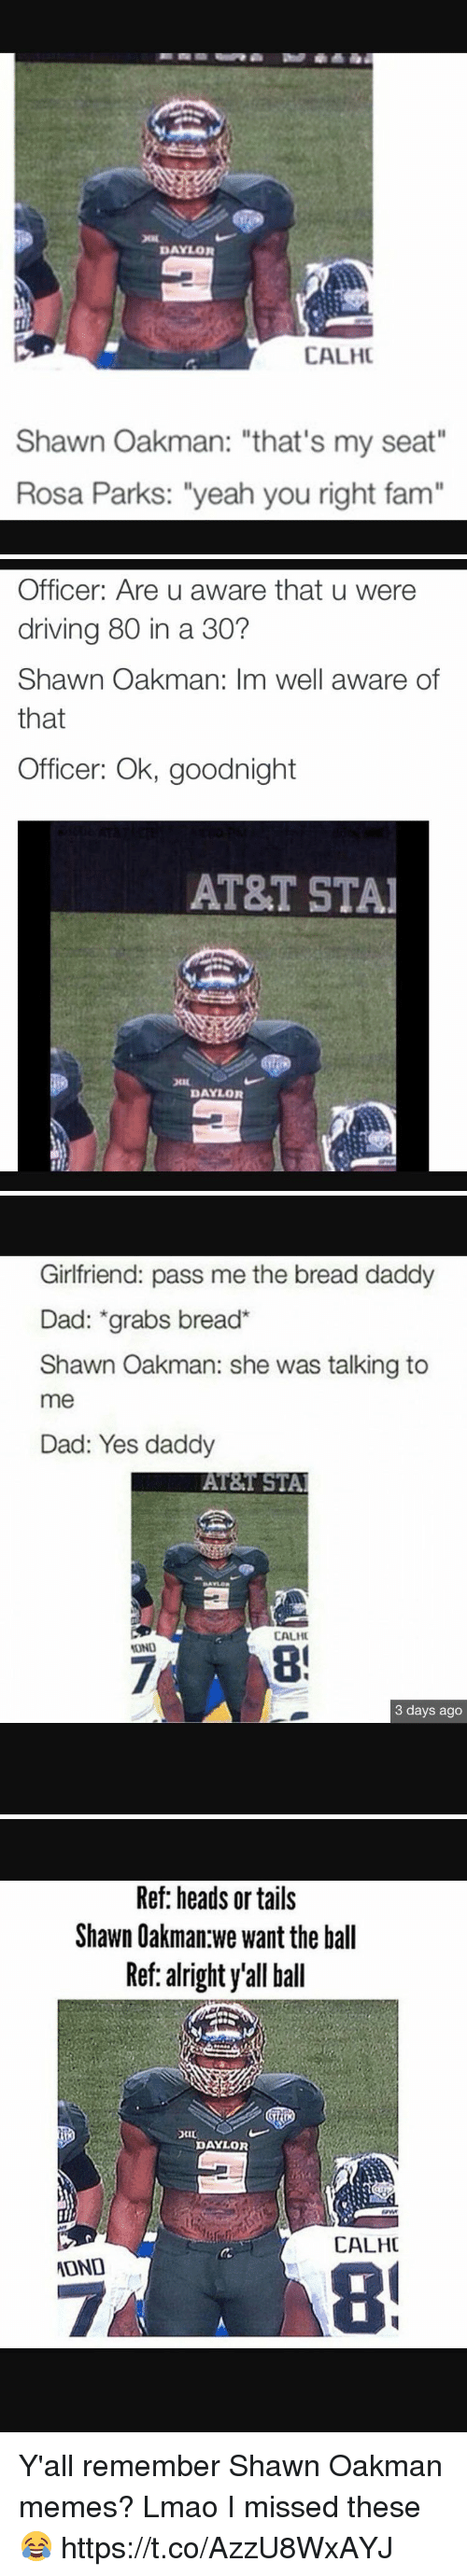 """Shawn Oakman: DAYLOR  CALHC  Shawn Oakman: """"that's my seat""""  Rosa Parks: """"yeah you right fam""""   Officer: Are u aware that u were  driving 80 in a 30?  Shawn Oakman: Im well aware of  that  Officer: Ok, goodnight  AT&T STAI  DAYLOR   Girlfriend: pass me the bread daddy  Dad: grabs bread  Shawn Oakman: she was talking to  me  Dad: Yes daddy  AT&T STAl  CALHU  3 days ago   Ref: heads or tails  Shawn Oakman we want the ball  Ref: alright y'all ball  DAYLOR  CALHC  ATOND Y'all remember Shawn Oakman memes? Lmao I missed these😂 https://t.co/AzzU8WxAYJ"""